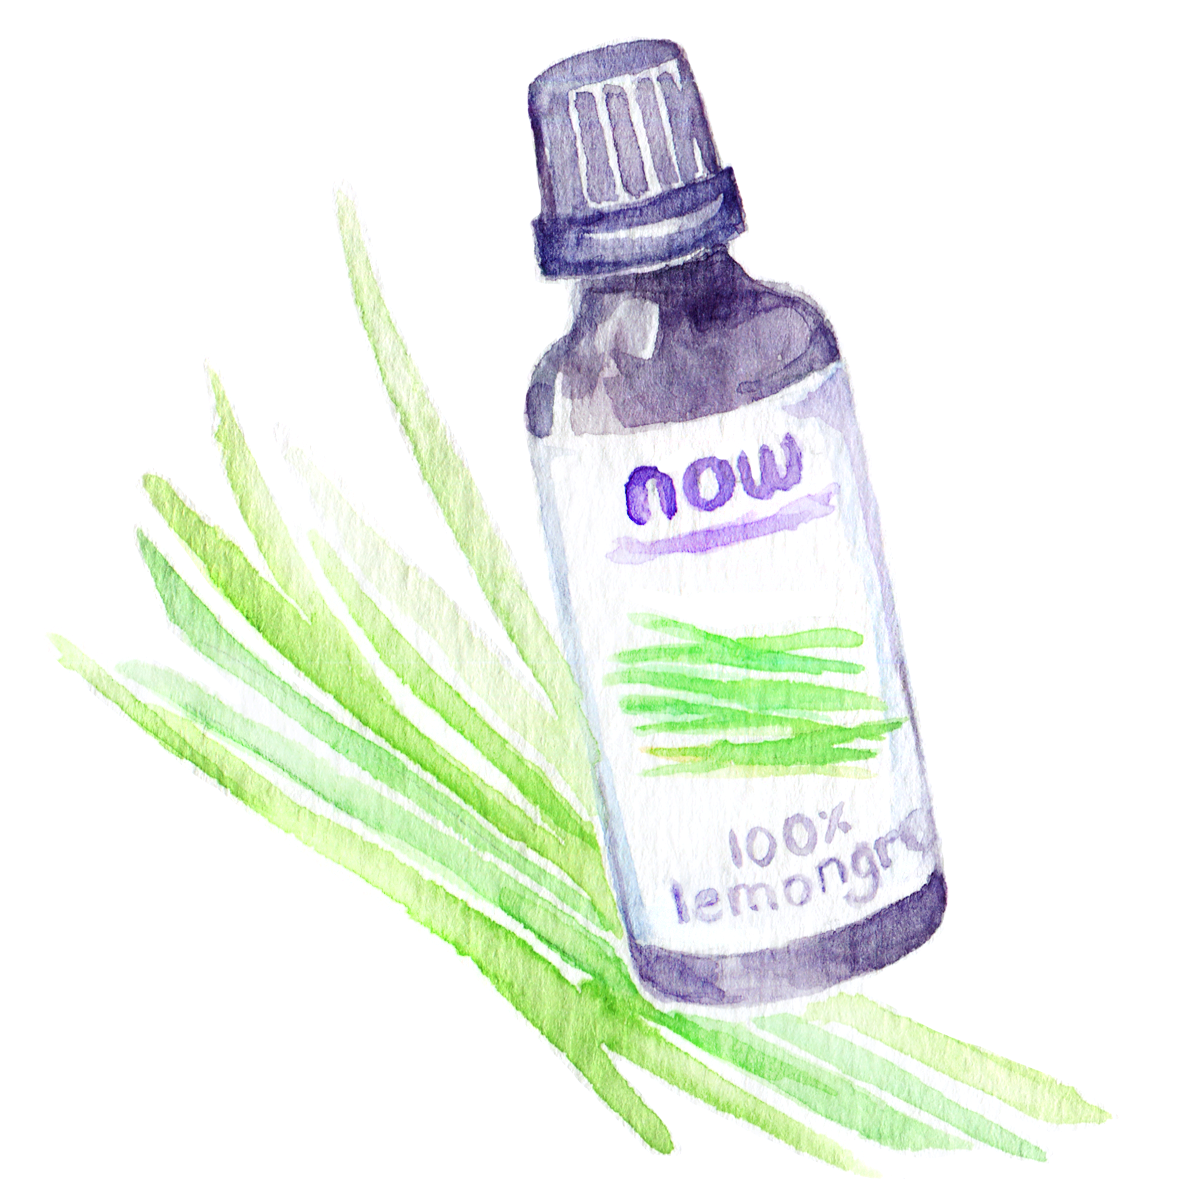 Favorite Thing for Working from Home: Lemongrass Essential Oil  Working from home means being stuck in the same environment all day long. In winter, this can get claustrophobic for me - I'm literally in the same ROOM all day because heating is a pain.  As a result, I like to keep our home clean, clutter-free and cozy!  Scents help so much with that: They can energize, calm, banish other scents and change the atmosphere of a room completely.  Recently, I started using more diffusers instead of scented candles (I went through those WAY too quickly!) and now have a humble little collection of essential oils. My favorite scent in January was  L emongrass! Not only did it remind me of  our trip to Thailand  and warmer months, but it went really well with the pervasive scent of oranges we were eating non-stop. A combination of a summer and winter scent, if you will!  Lemongrass oil is citrus-y but less sweet than other citrus oils, with earthy undertones that make it relaxing and refreshing at the same time. It also mixes very well with lavender oil - a favorite mix of mine for late evenings.